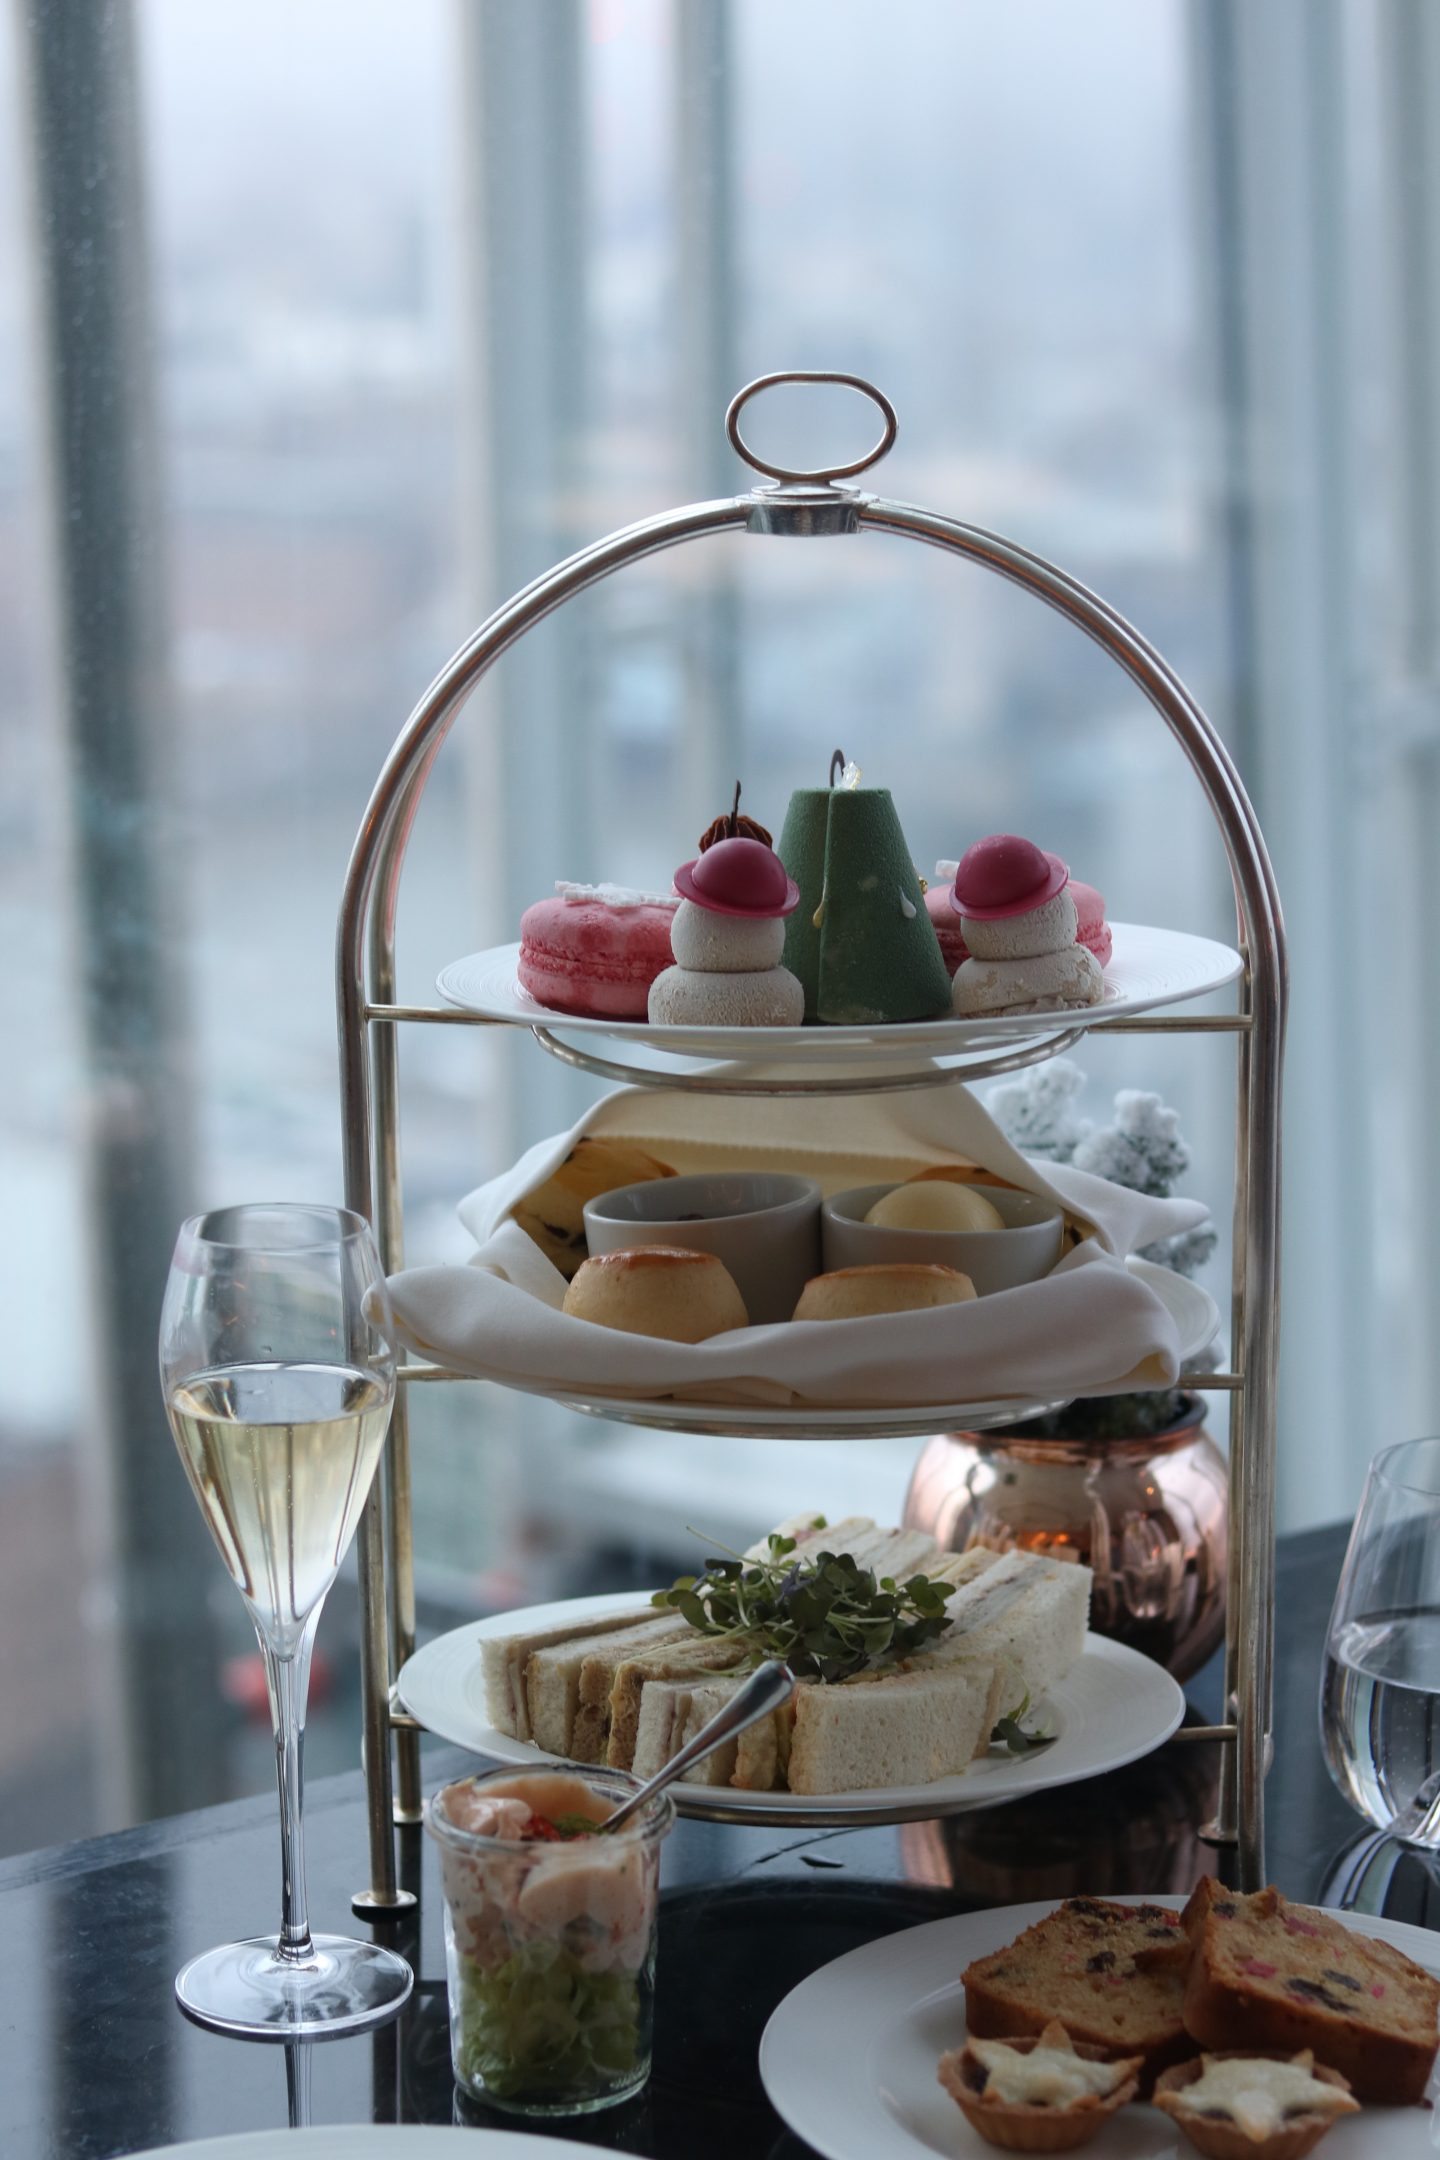 Festive Afternoon Tea at TĪNG, The Shangri-La Hotel at The Shard